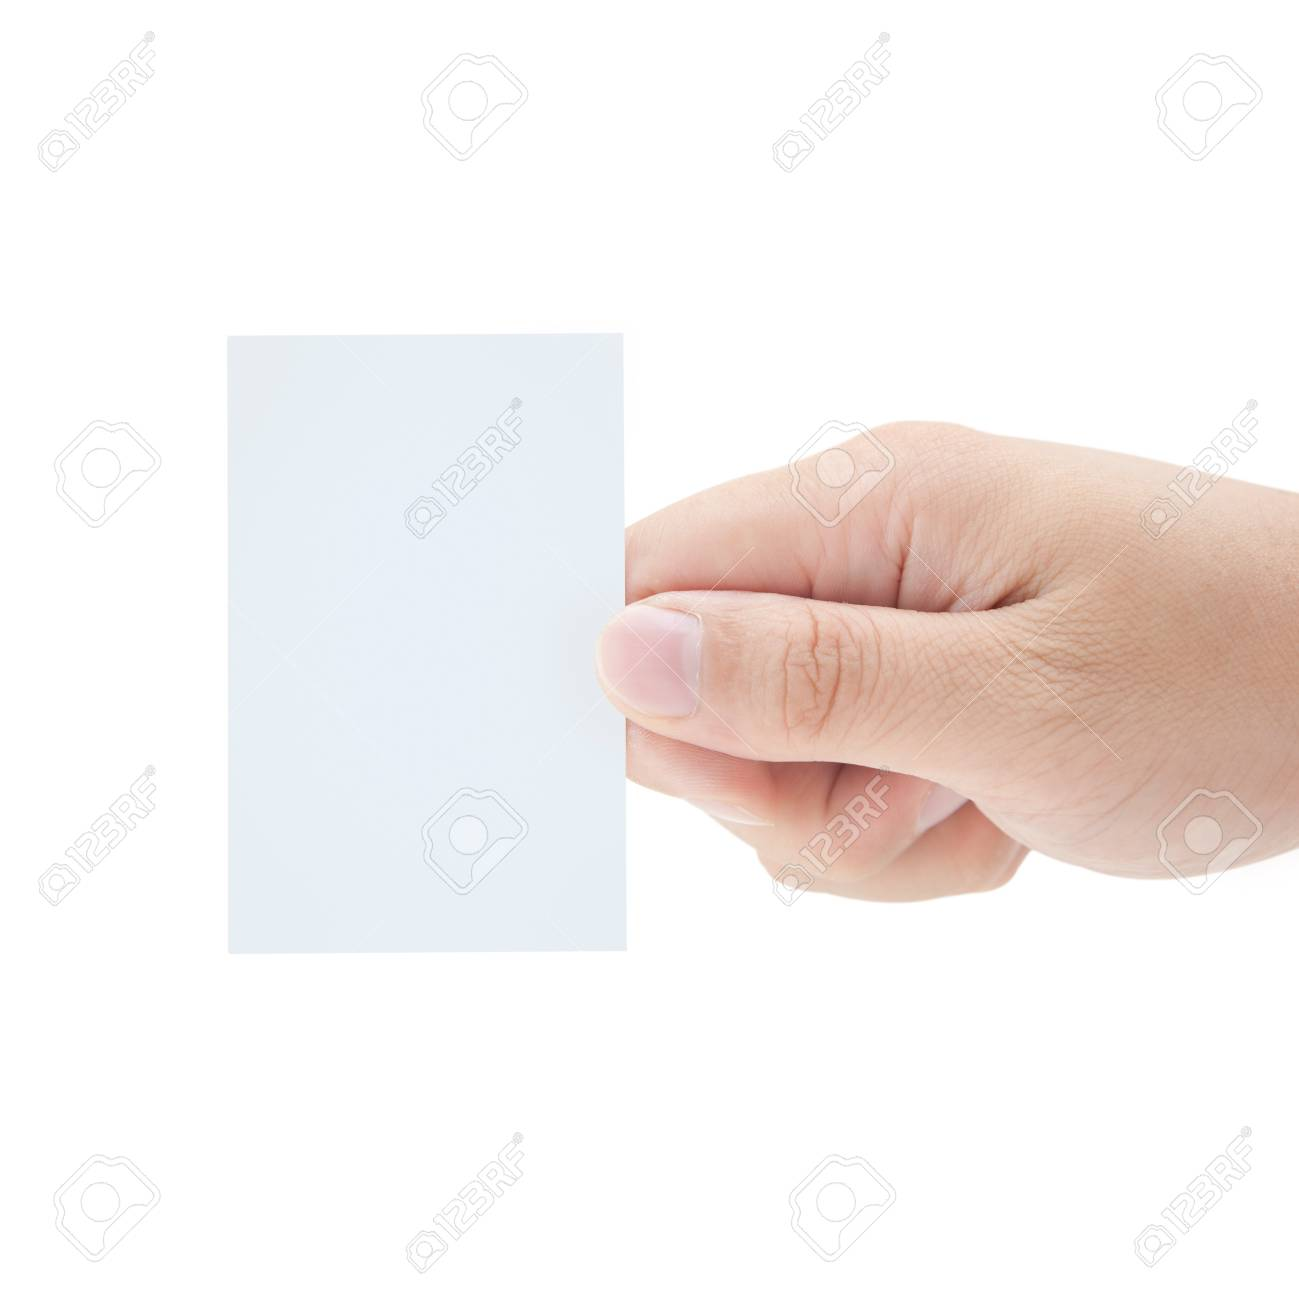 Blank Business Card In Hand Stock Photo - 7775320